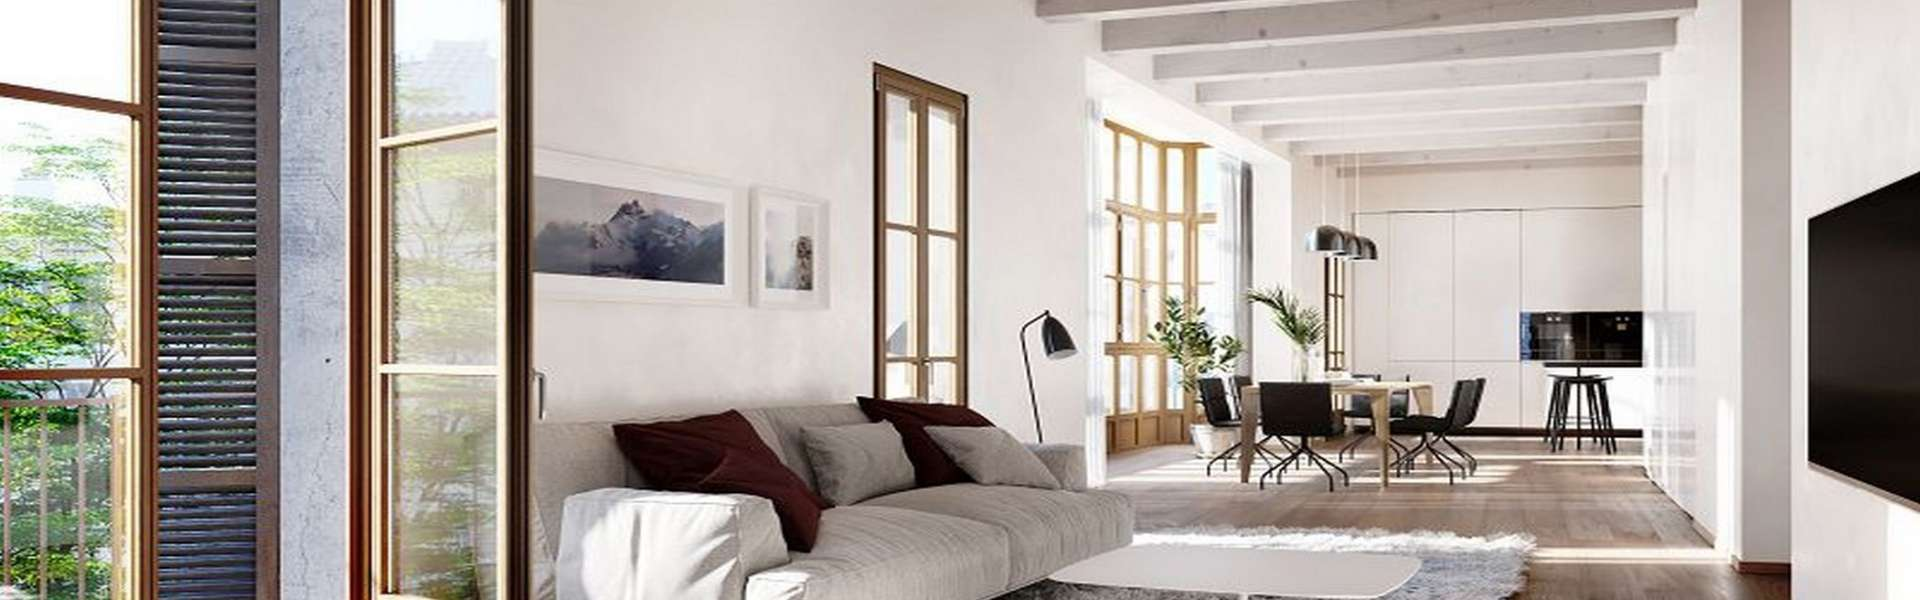 Palma/Old town - Luxury duplex penthouse in the beautiful old town of Palma